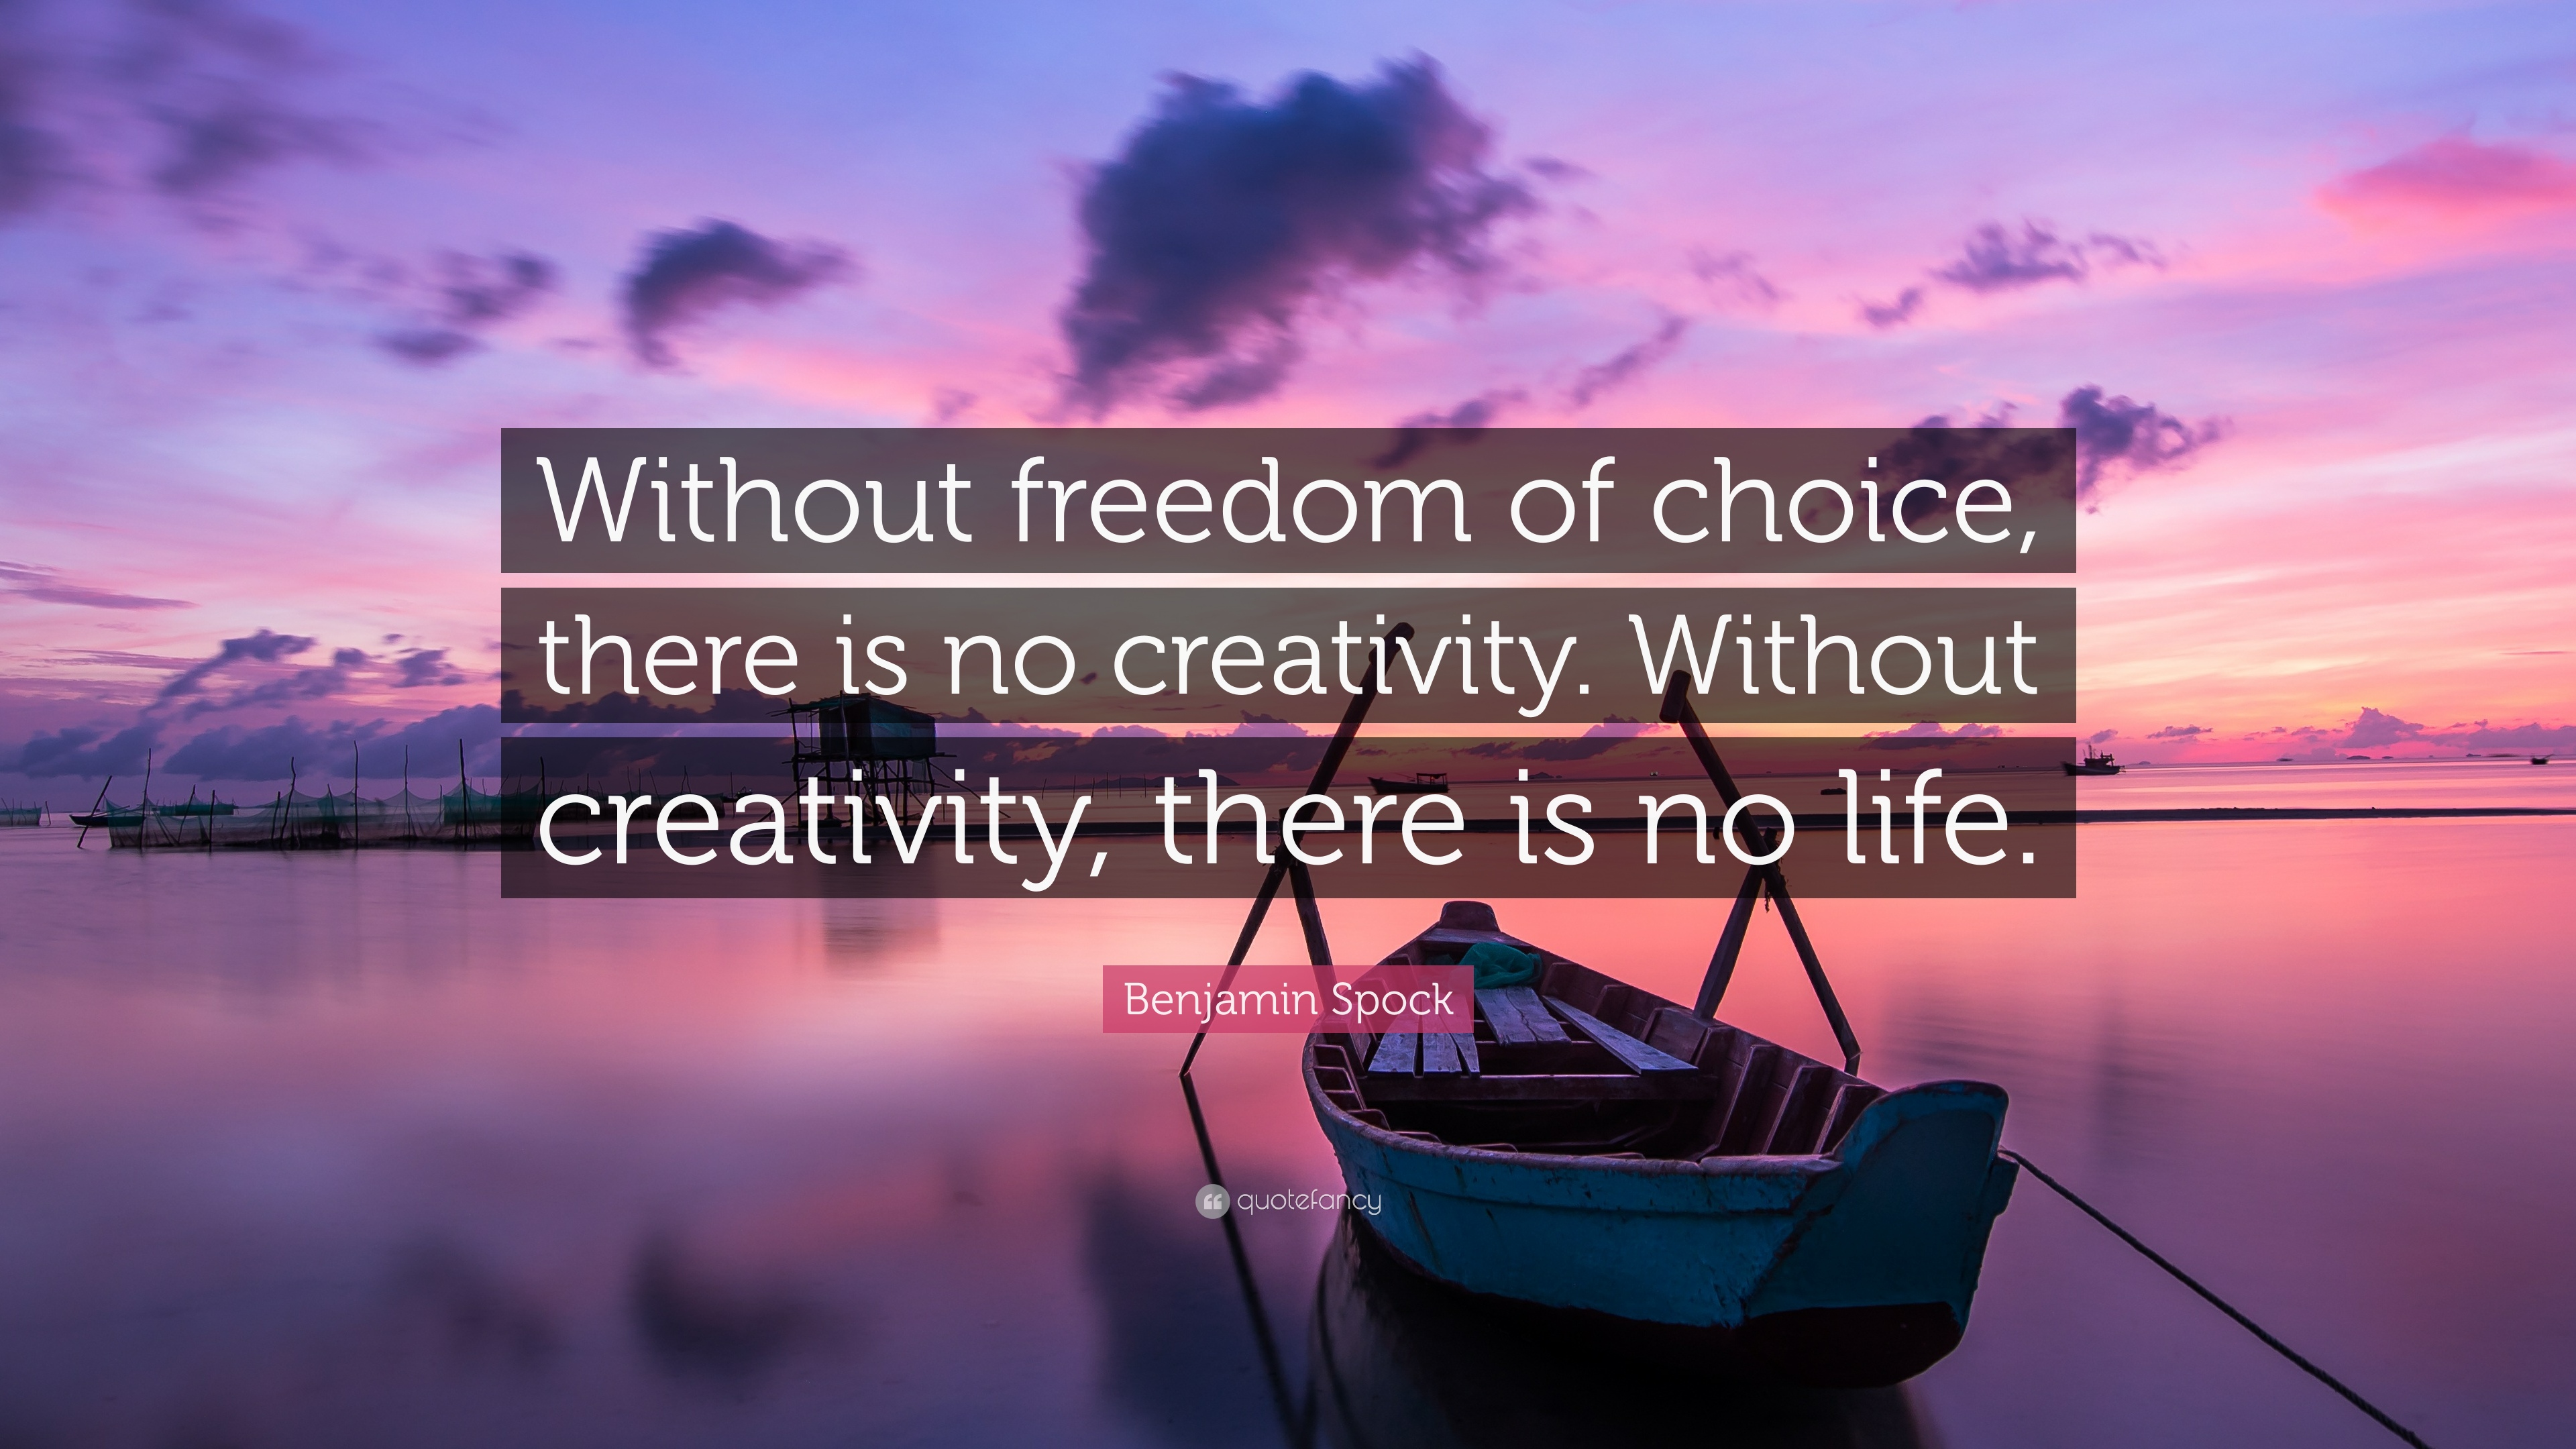 Superb Benjamin Spock Quote: U201cWithout Freedom Of Choice, There Is No Creativity.  Without